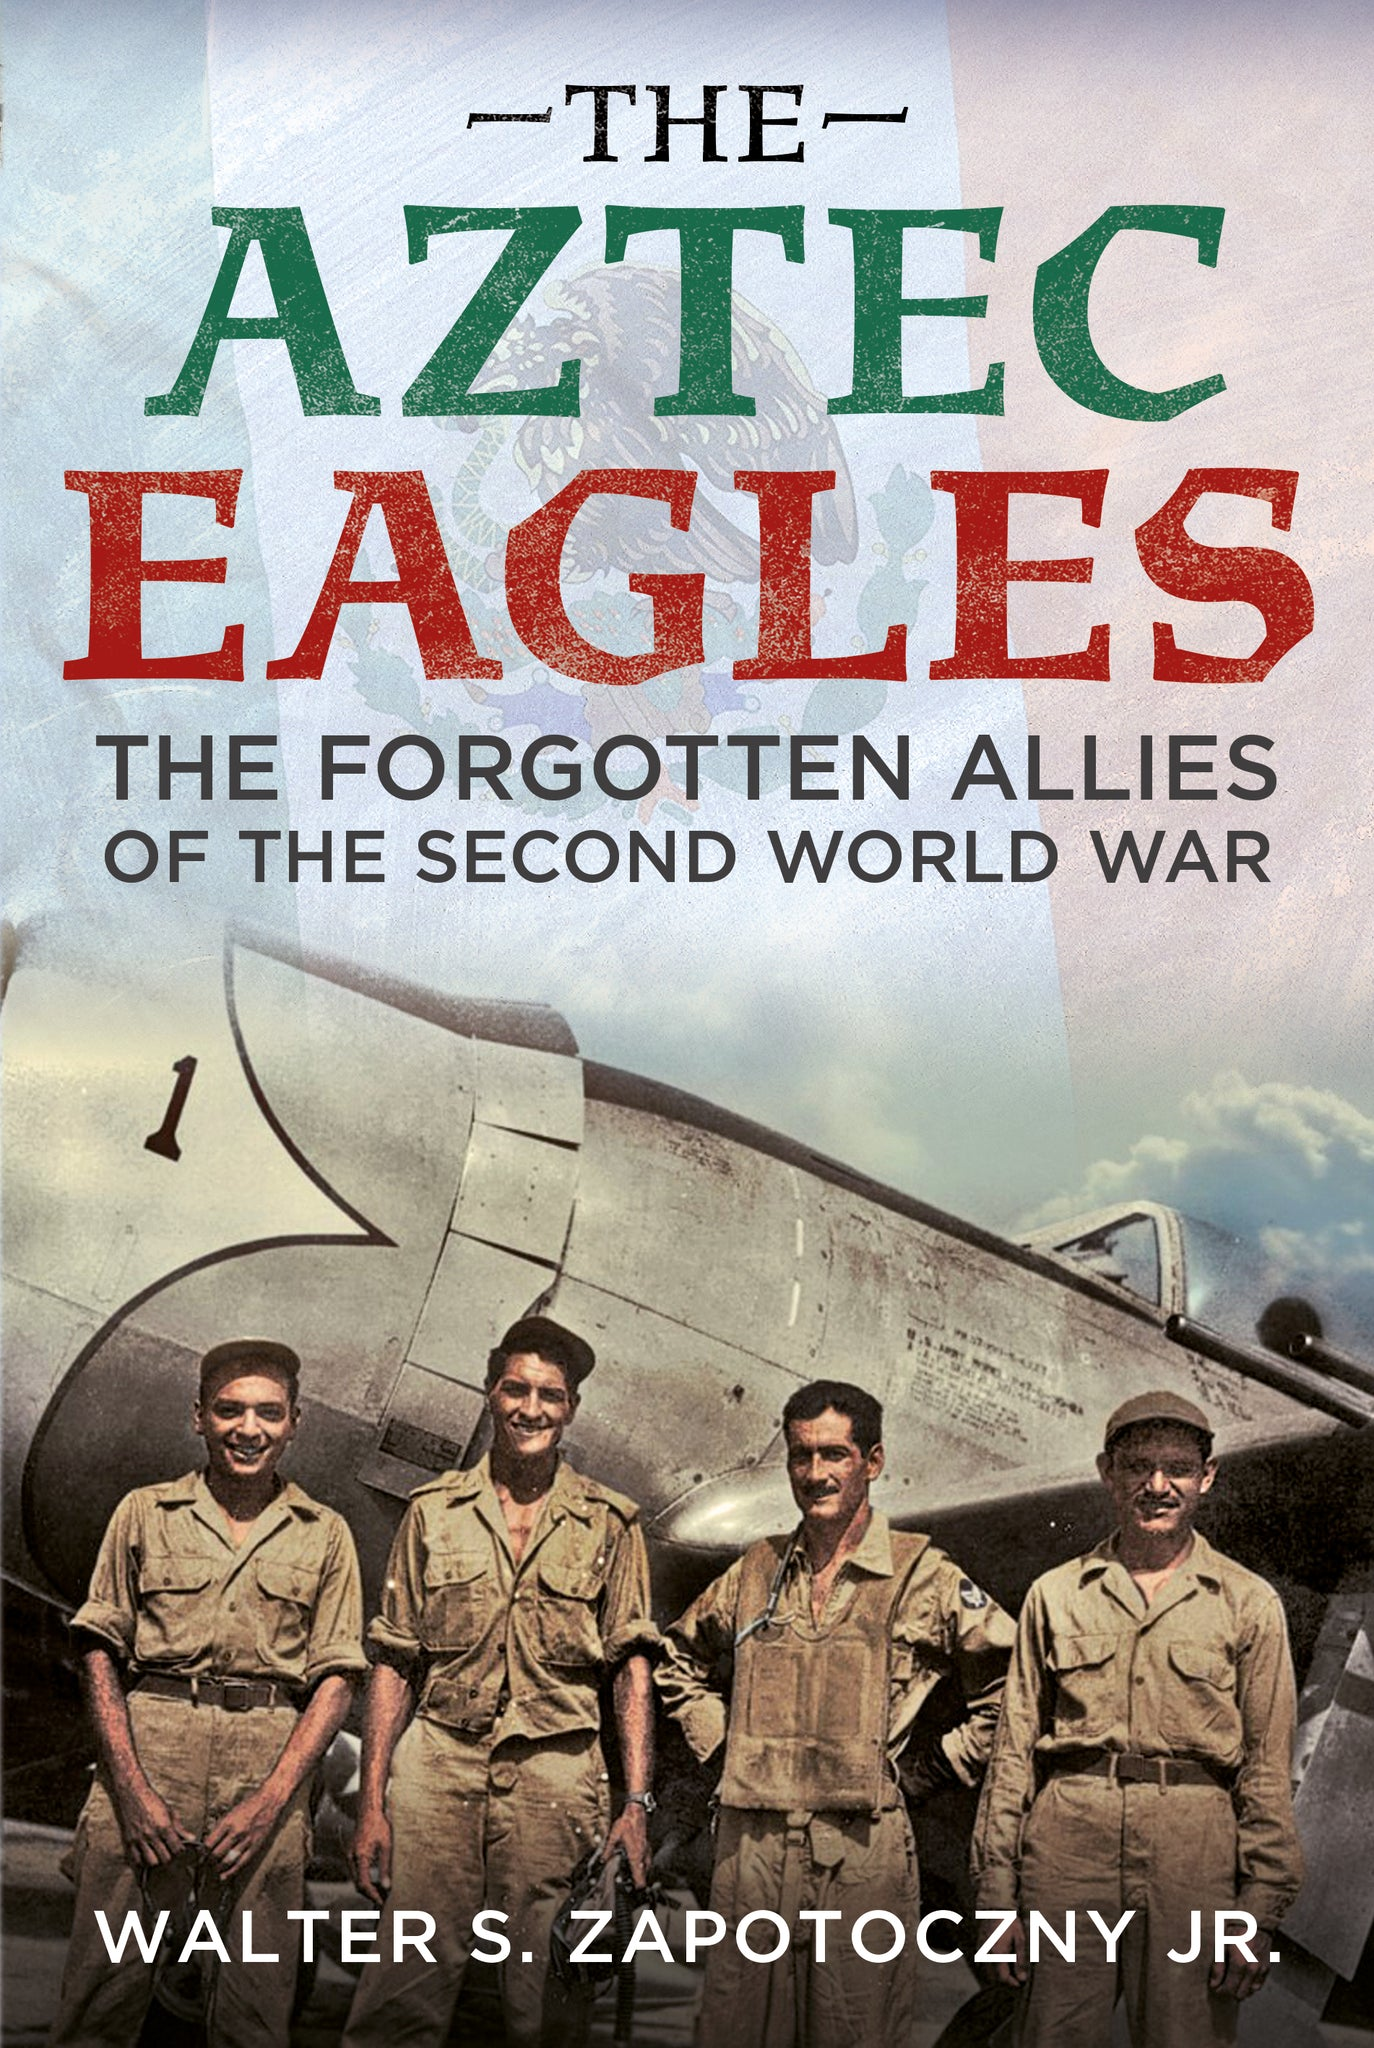 The Aztec Eagles: The Forgotten Allies of the Second World War